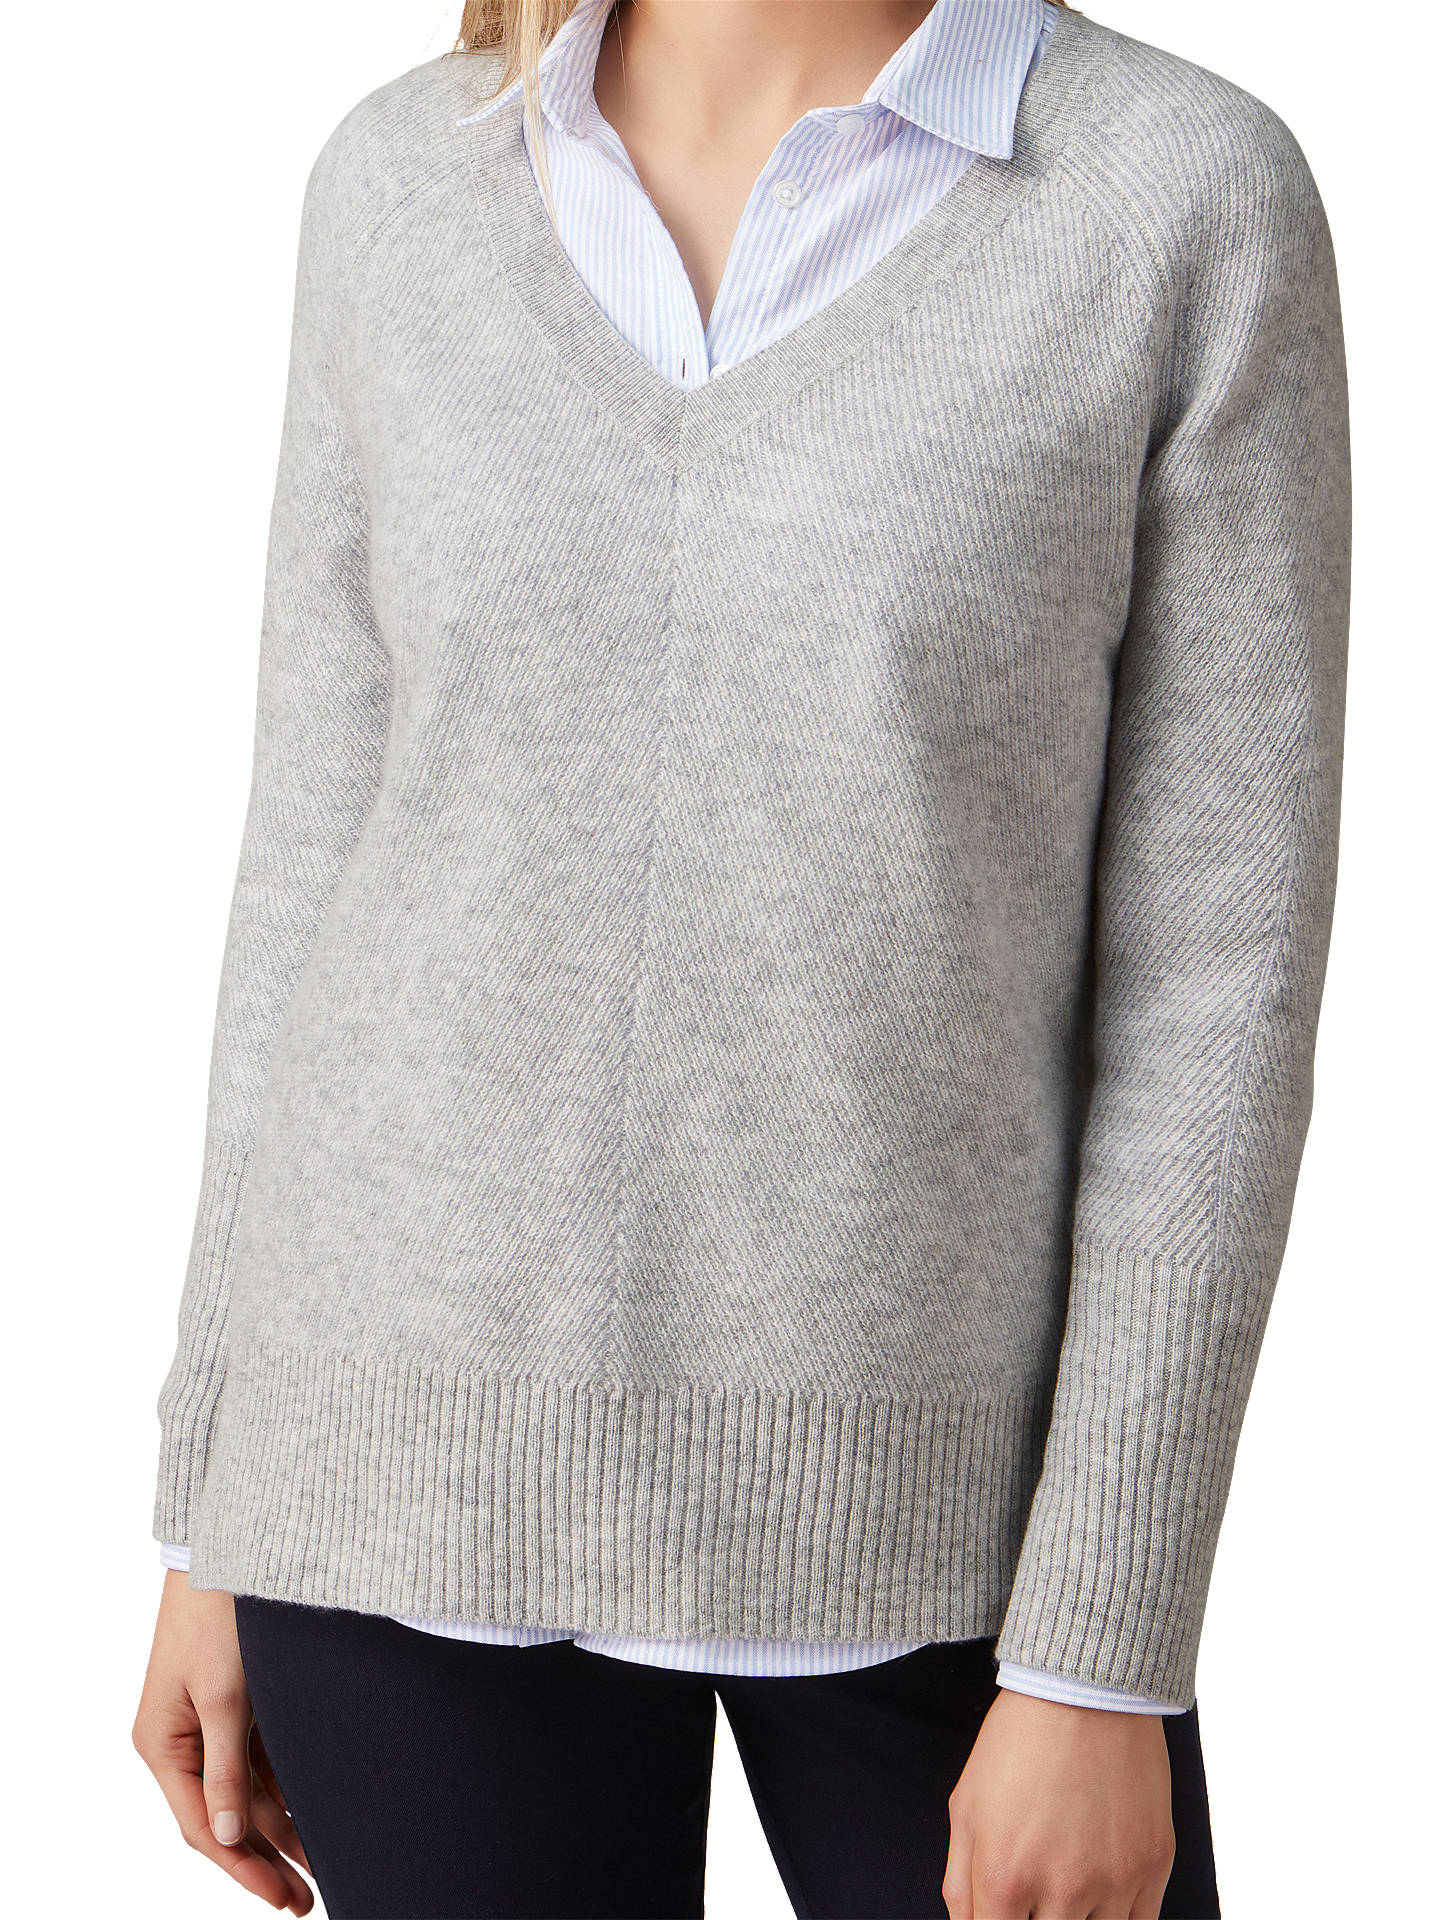 BuyPure Collection Gassato Cashmere Lofty Textured V-Neck Jumper, Heather Dove, 14 Online at johnlewis.com